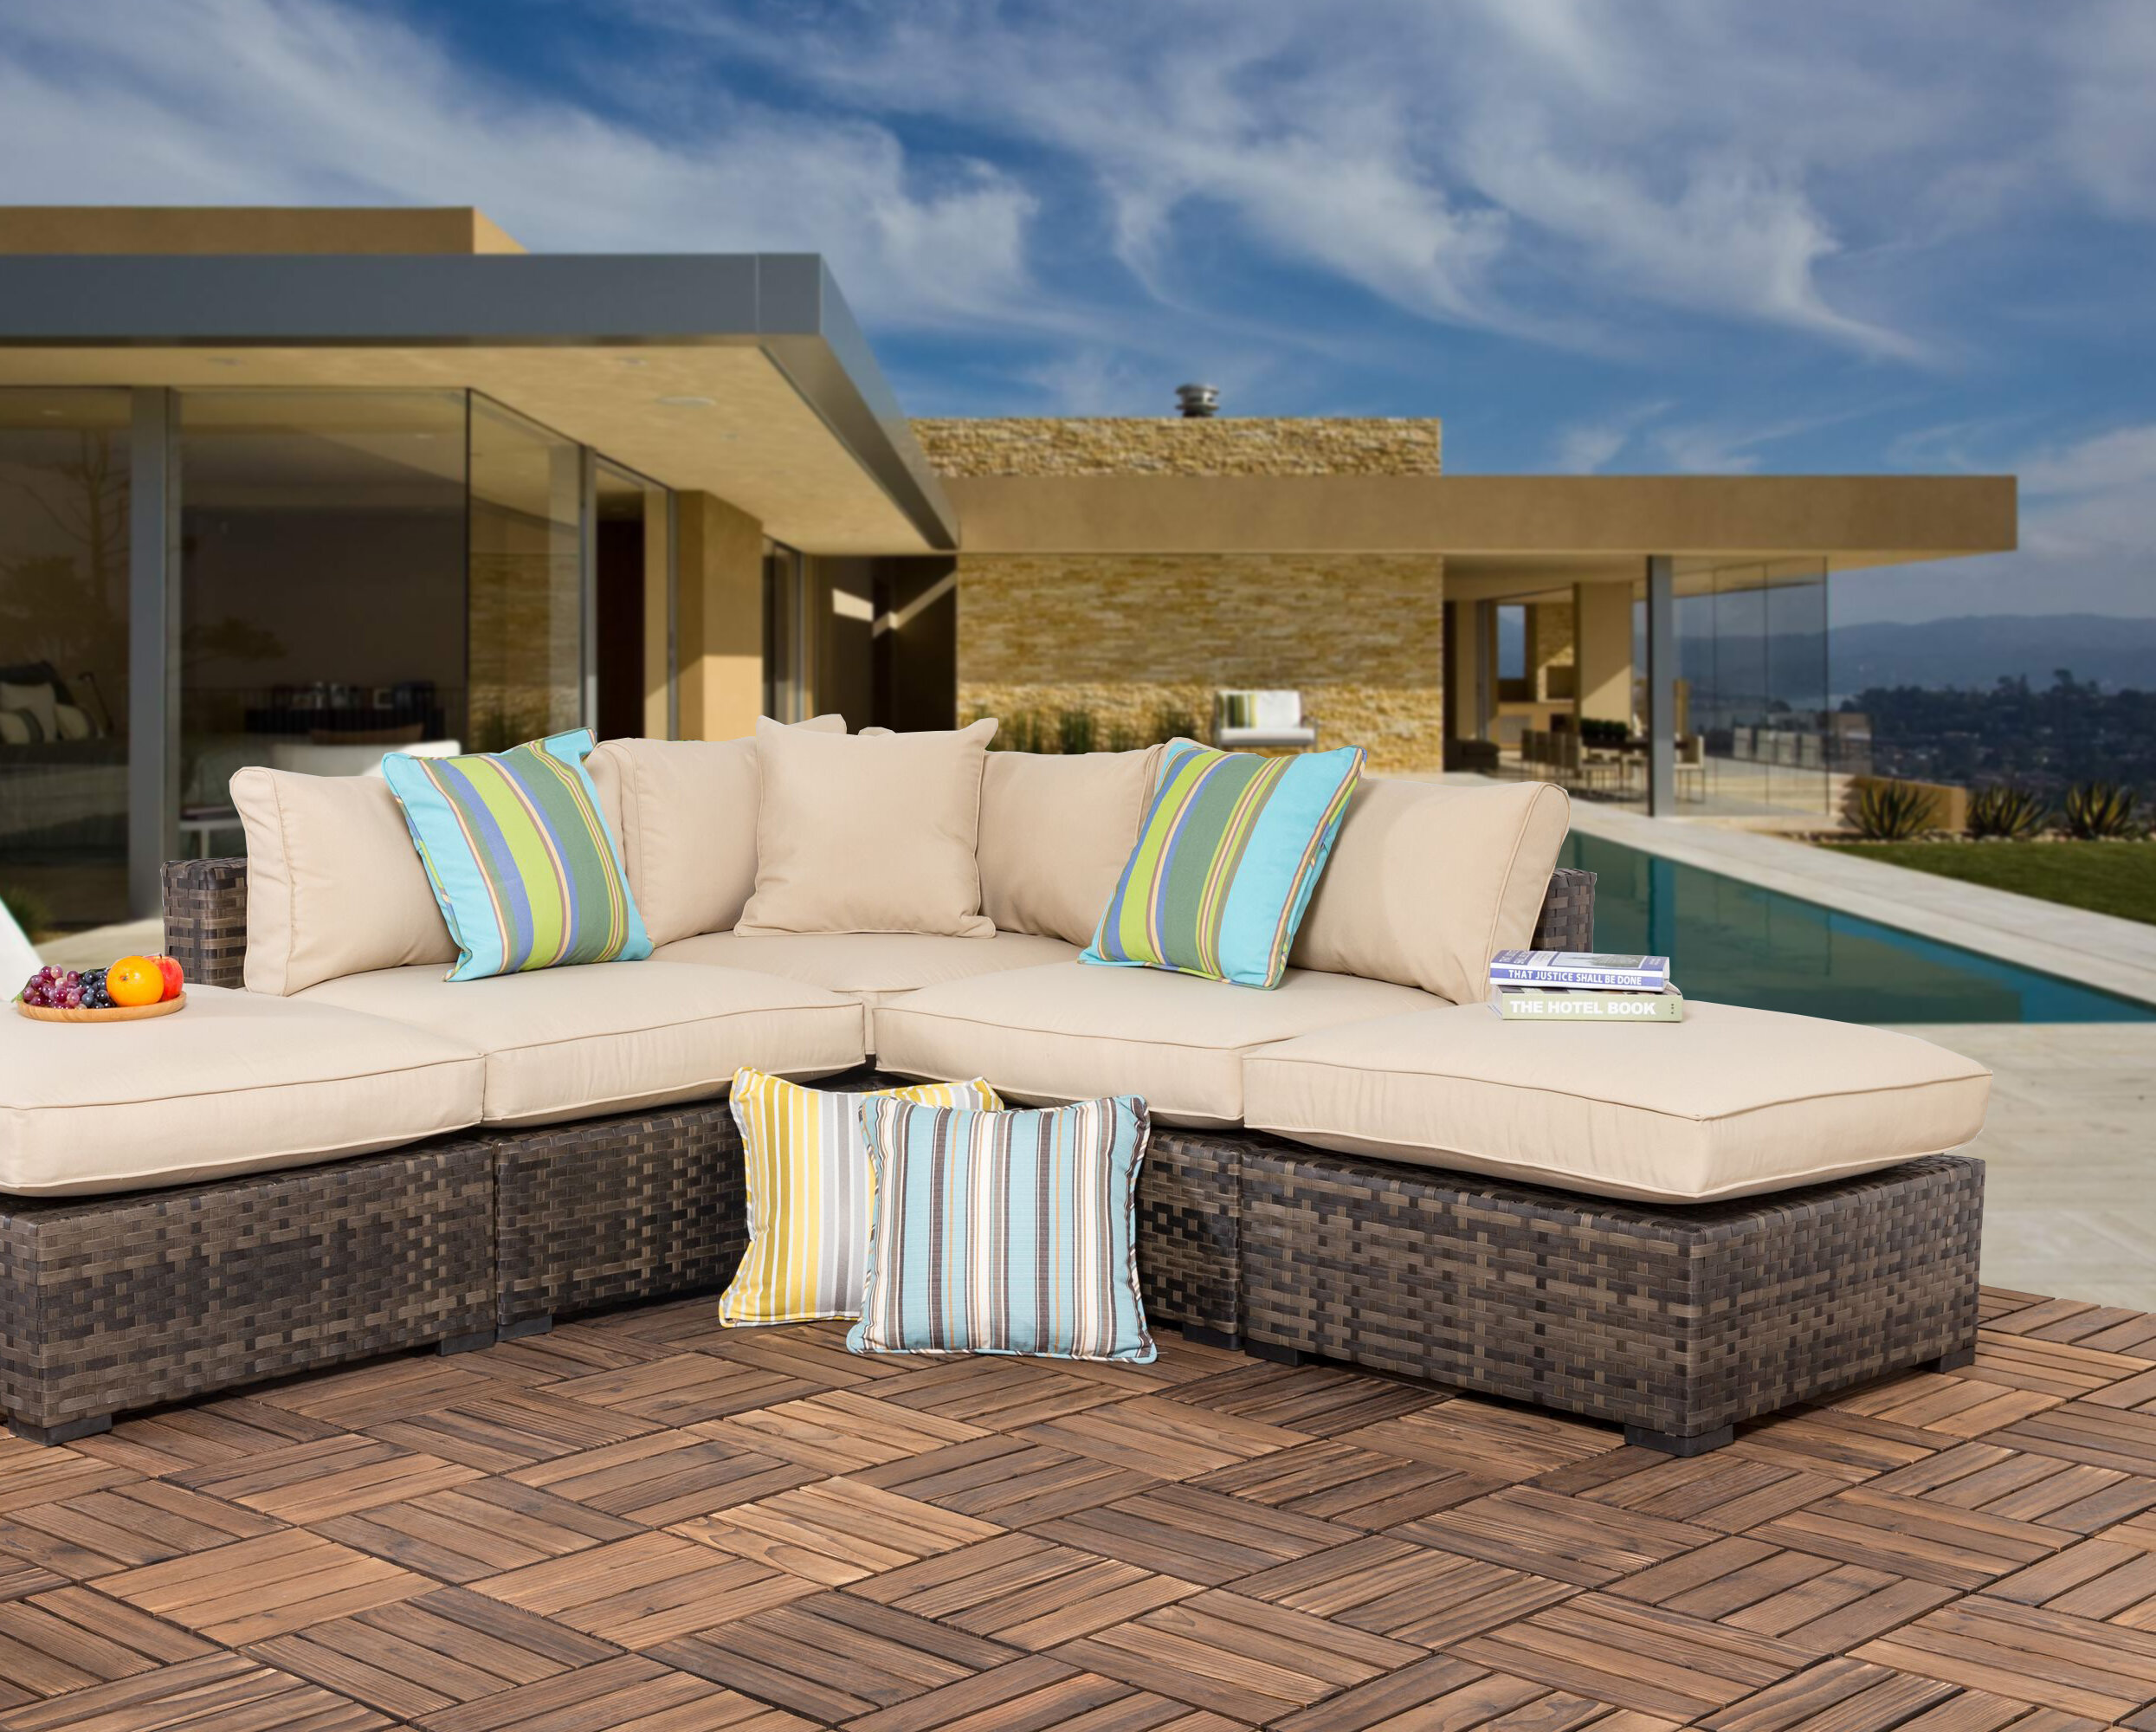 Haskins Outdoor 10 Piece Wicker Sectional Seating Group with Cushions